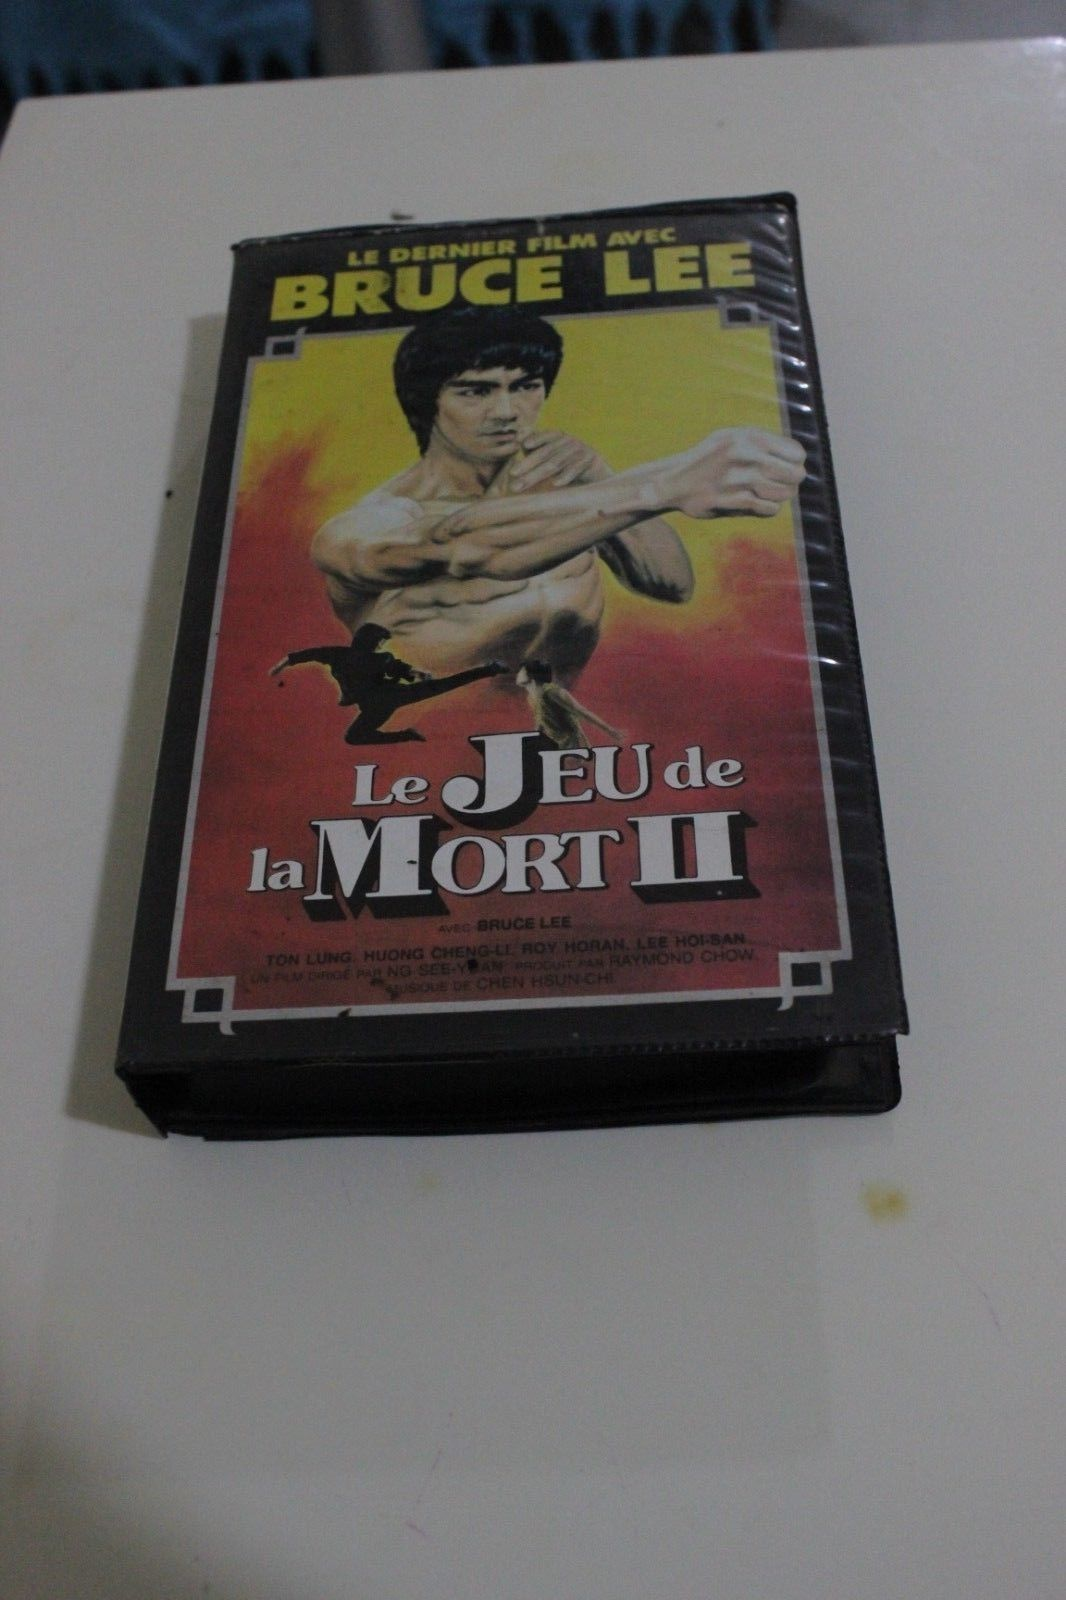 Primary image for Bruce Lee MOVIE EXTREME RARE vhs PAL FRENCH VERY HARD TO FIND